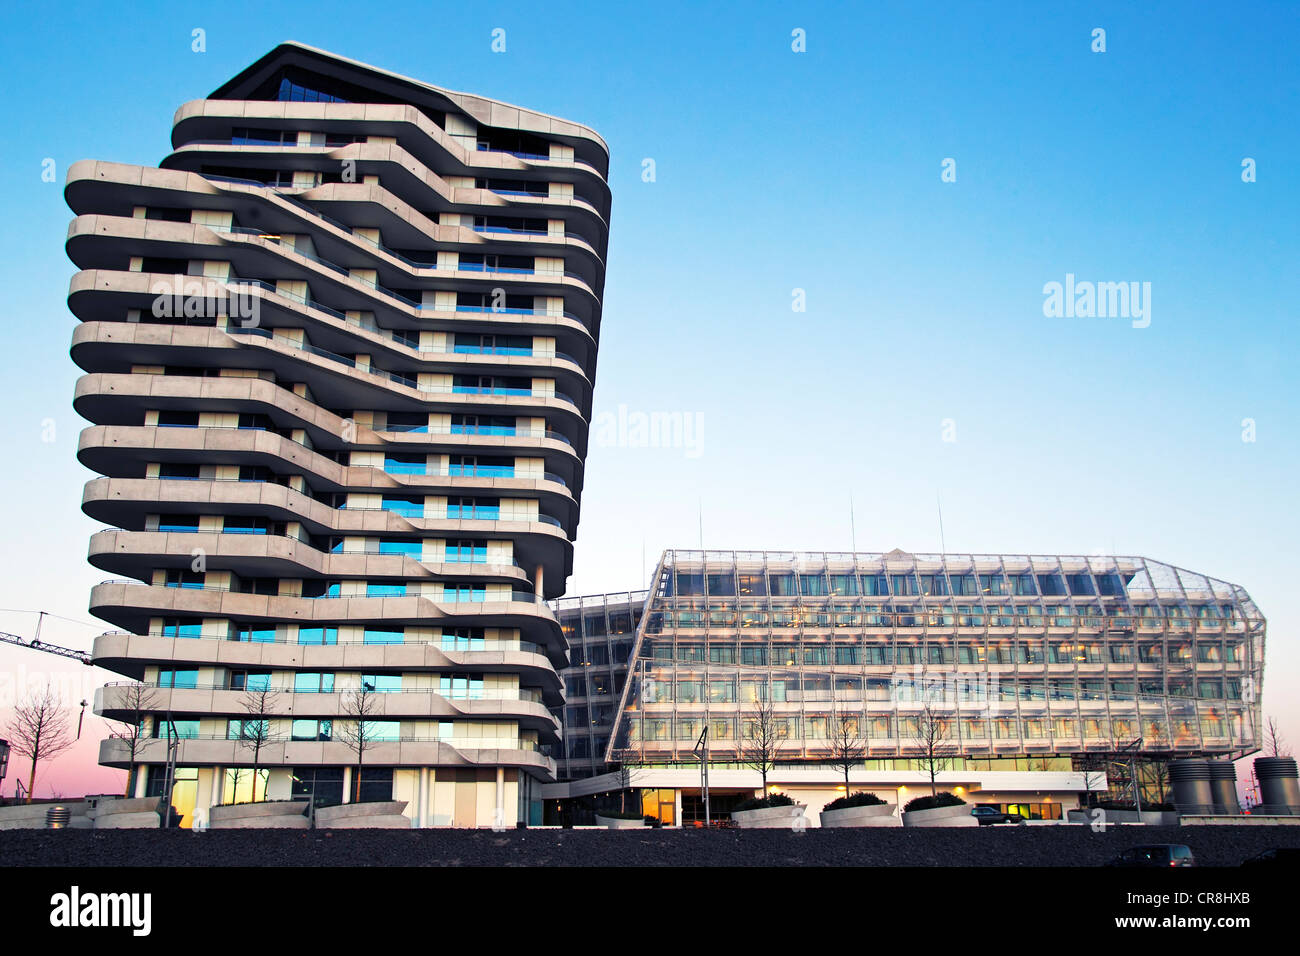 Hamburg Architektur Modern Architecture In The Hafencity In Hamburg High Resolution Stock Photography And Images - Alamy